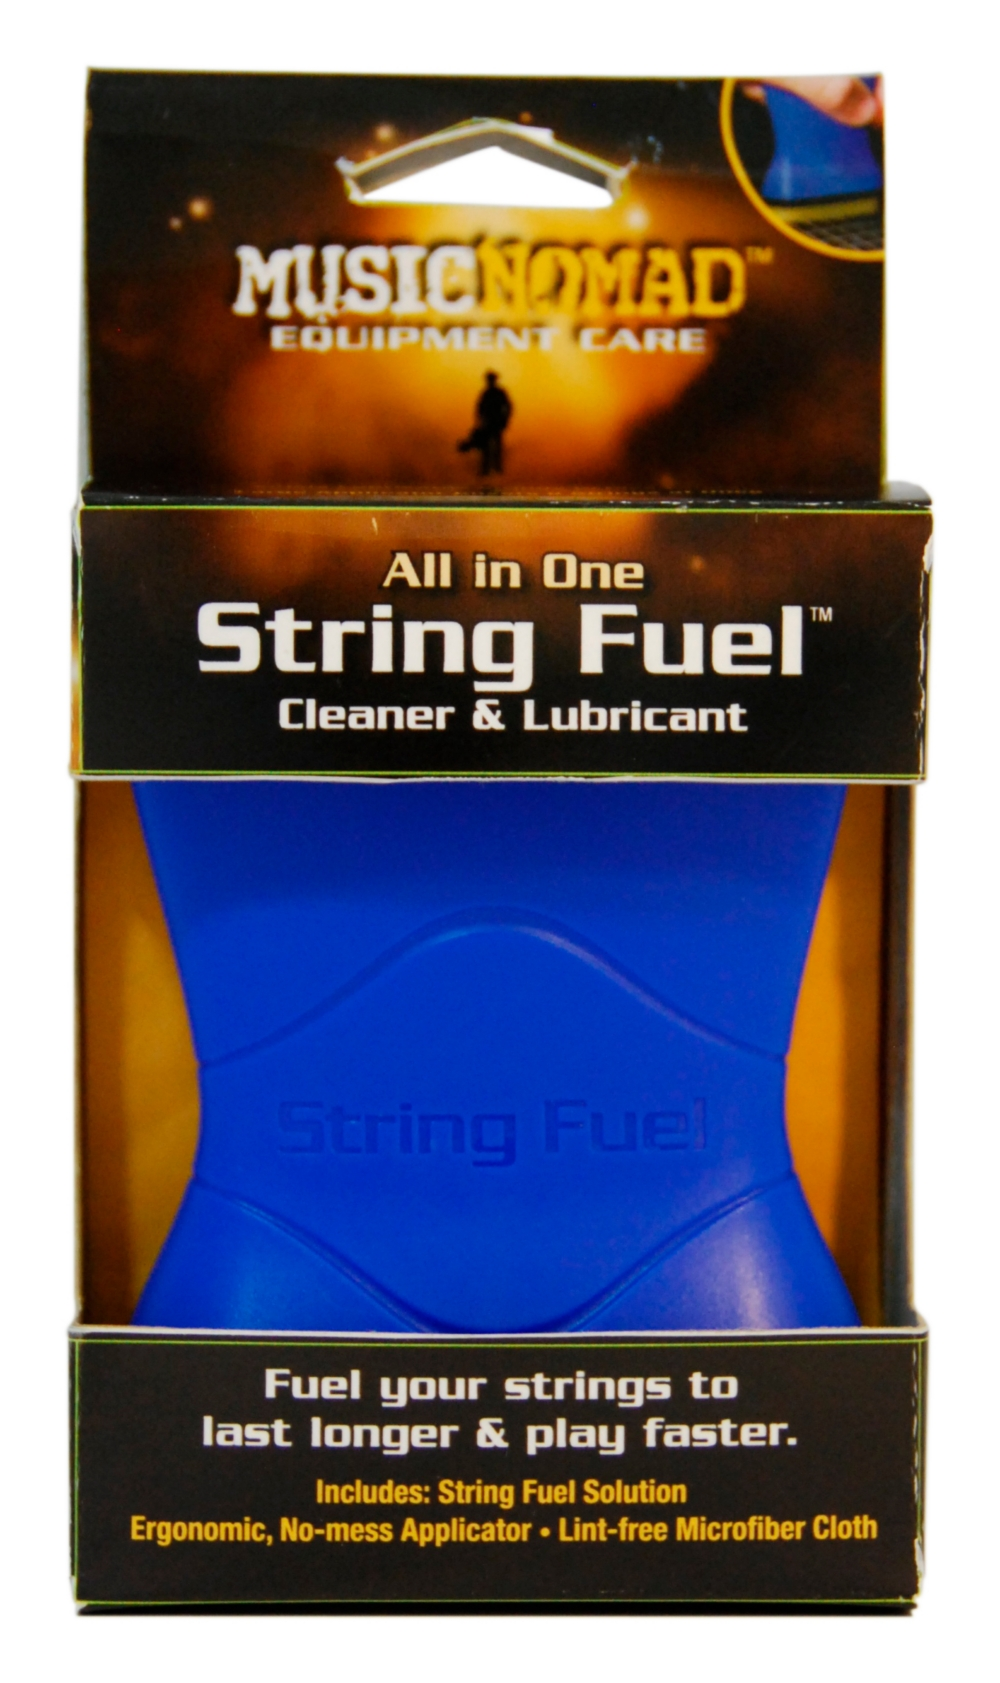 Music Nomad String Fuel All In One String Cleaner & Lubricant by Music Nomad